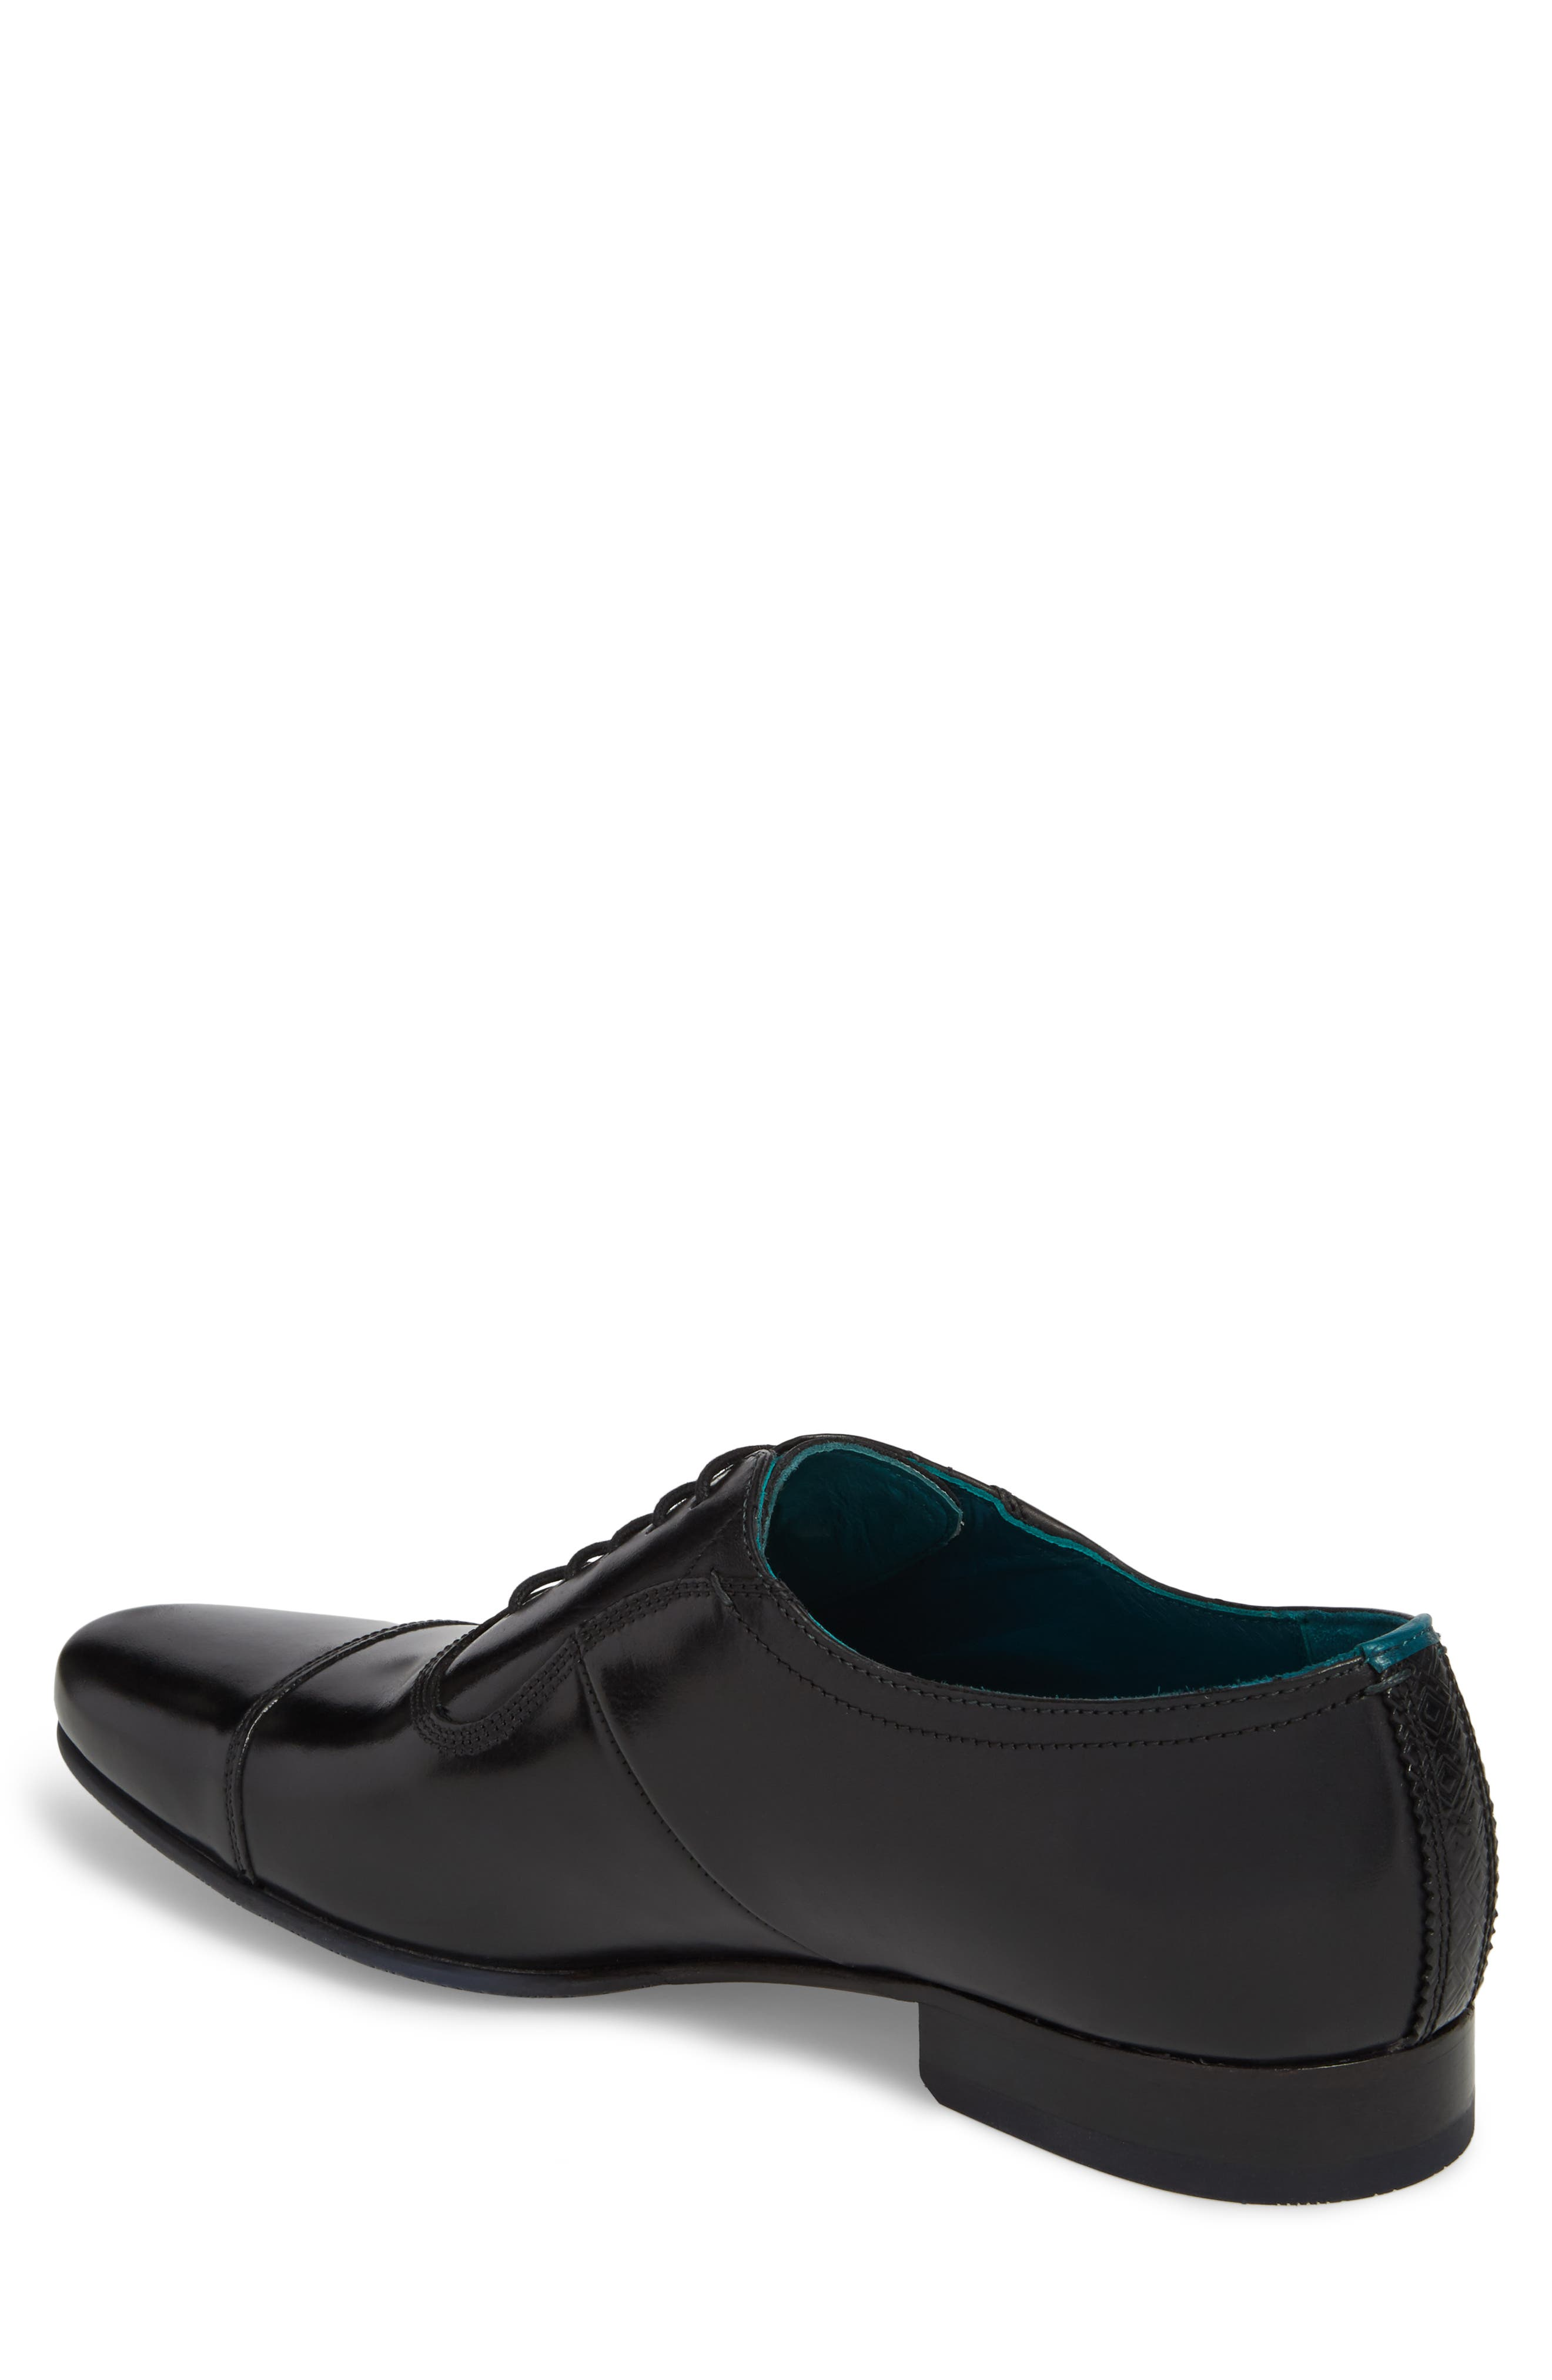 TED BAKER LONDON, Karney Cap Toe Oxford, Alternate thumbnail 2, color, BLACK LEATHER